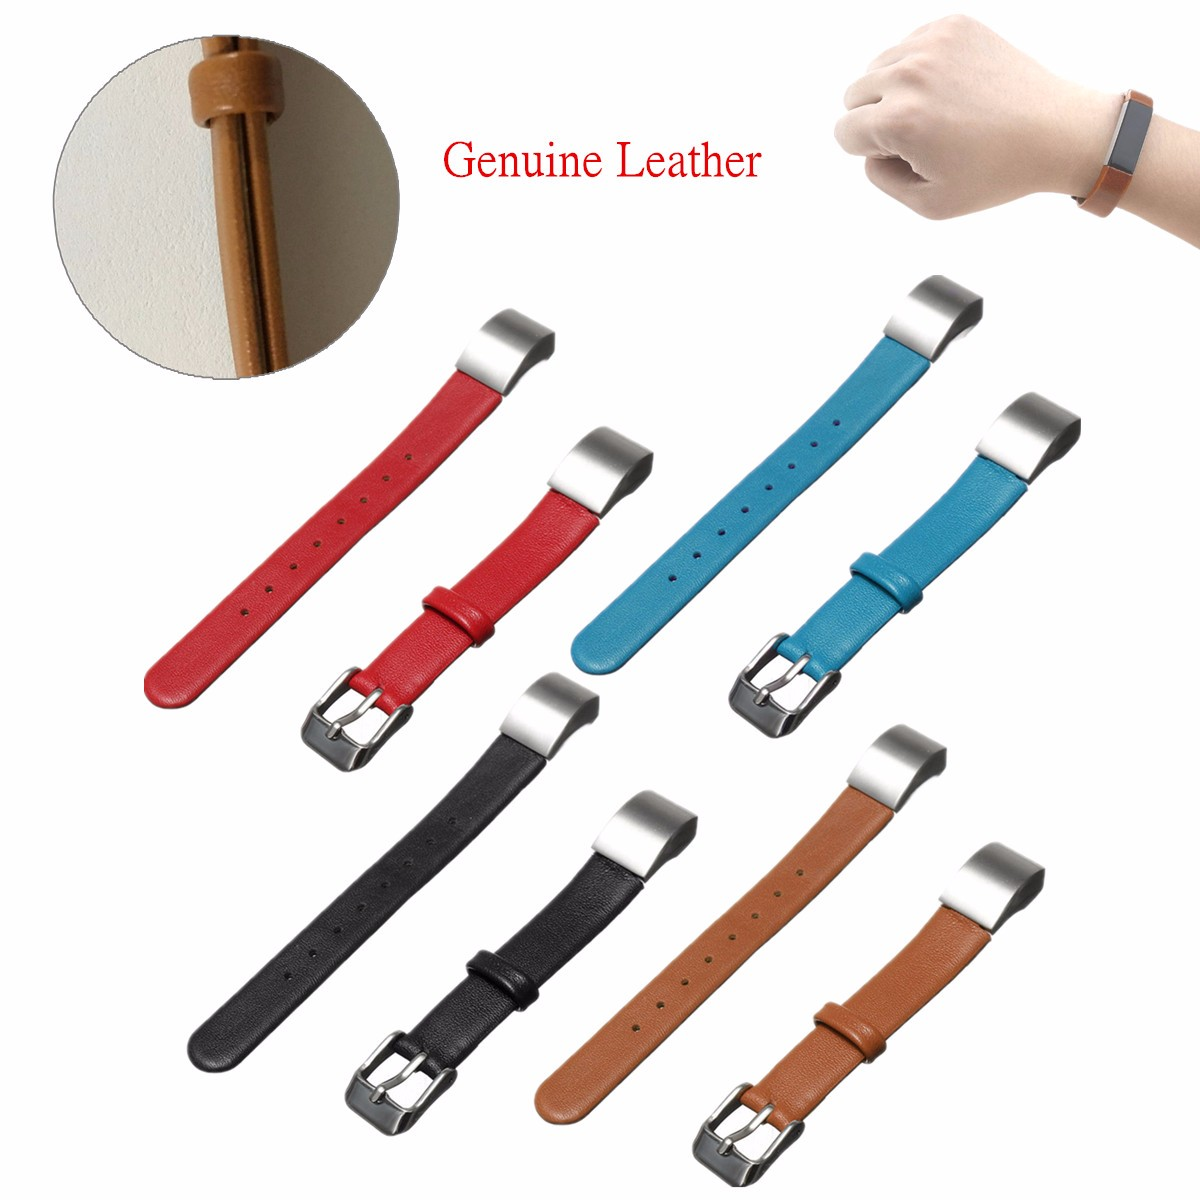 Replacement Watchbands Luxury Double Tour Genuine Leather Watchband Strap Bracelet For/Fitbit Alta Smart Watch Wrist Bands Strap long genuine leather watchband strap double tour bracelet for motorola moto 360 2nd generation women s 42mm smartwatch